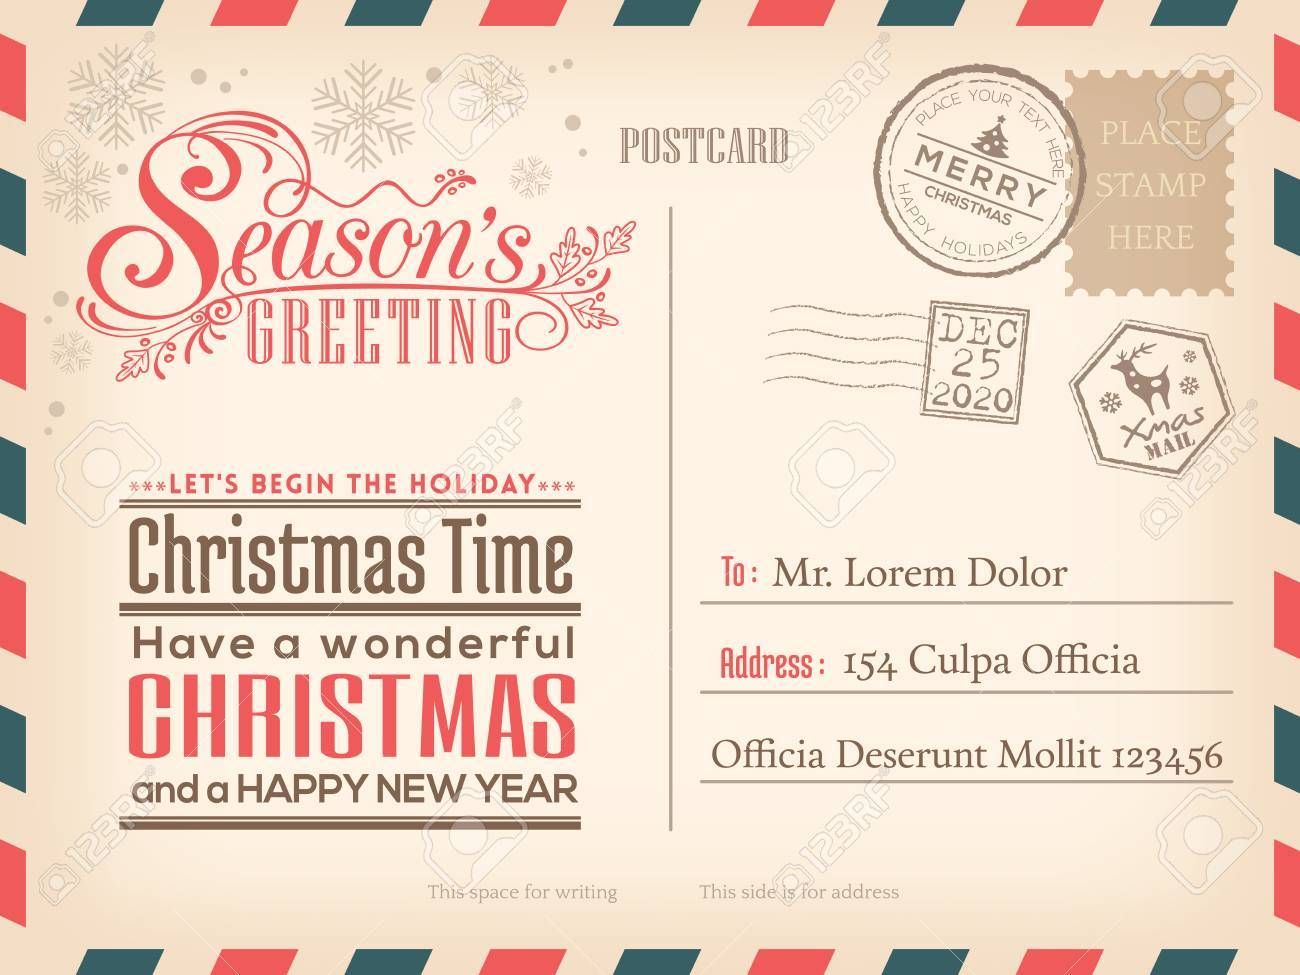 Vintage Christmas and Happy New year holiday postcard background for party invitation card - 50146377